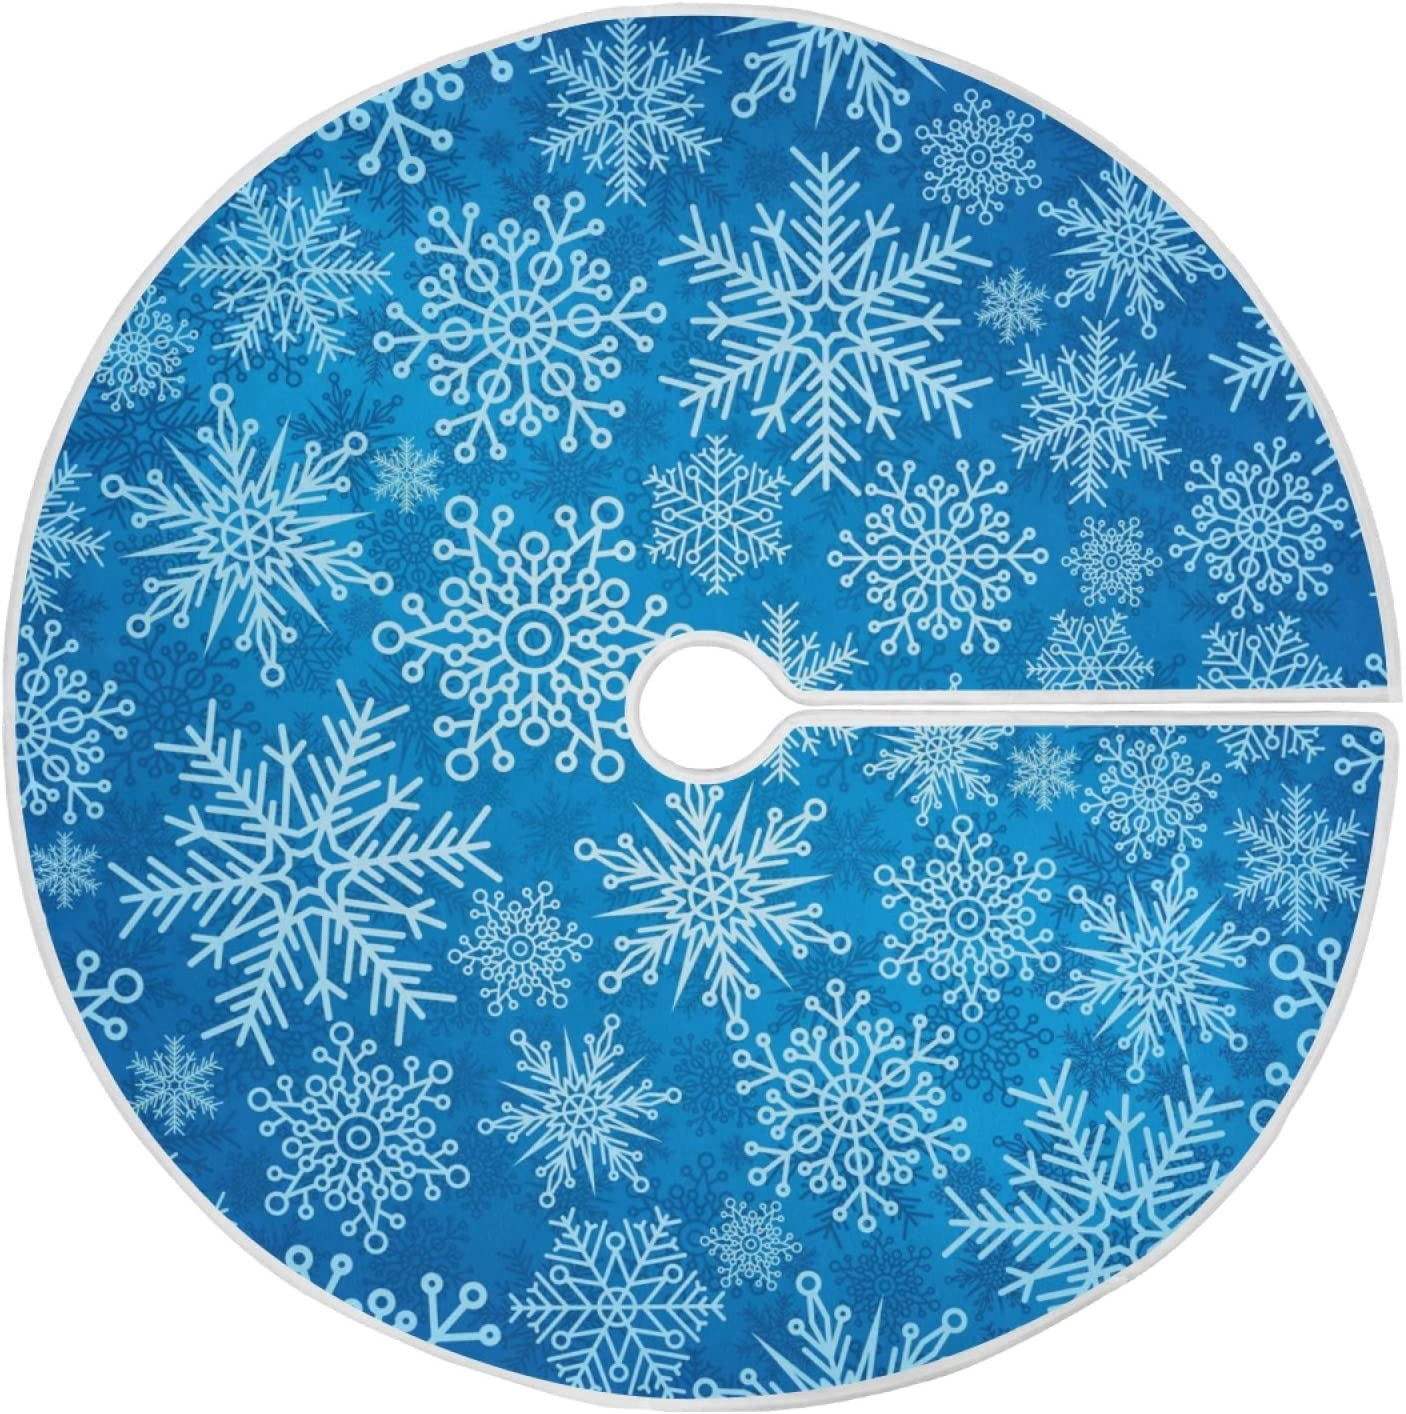 ALAZA Christmas Tree Skirt Decoration,Small Mini Tree Skirt Ornament 35.4 Inch with Winter Snowflakes for Christmas Party Holiday Home Decorations